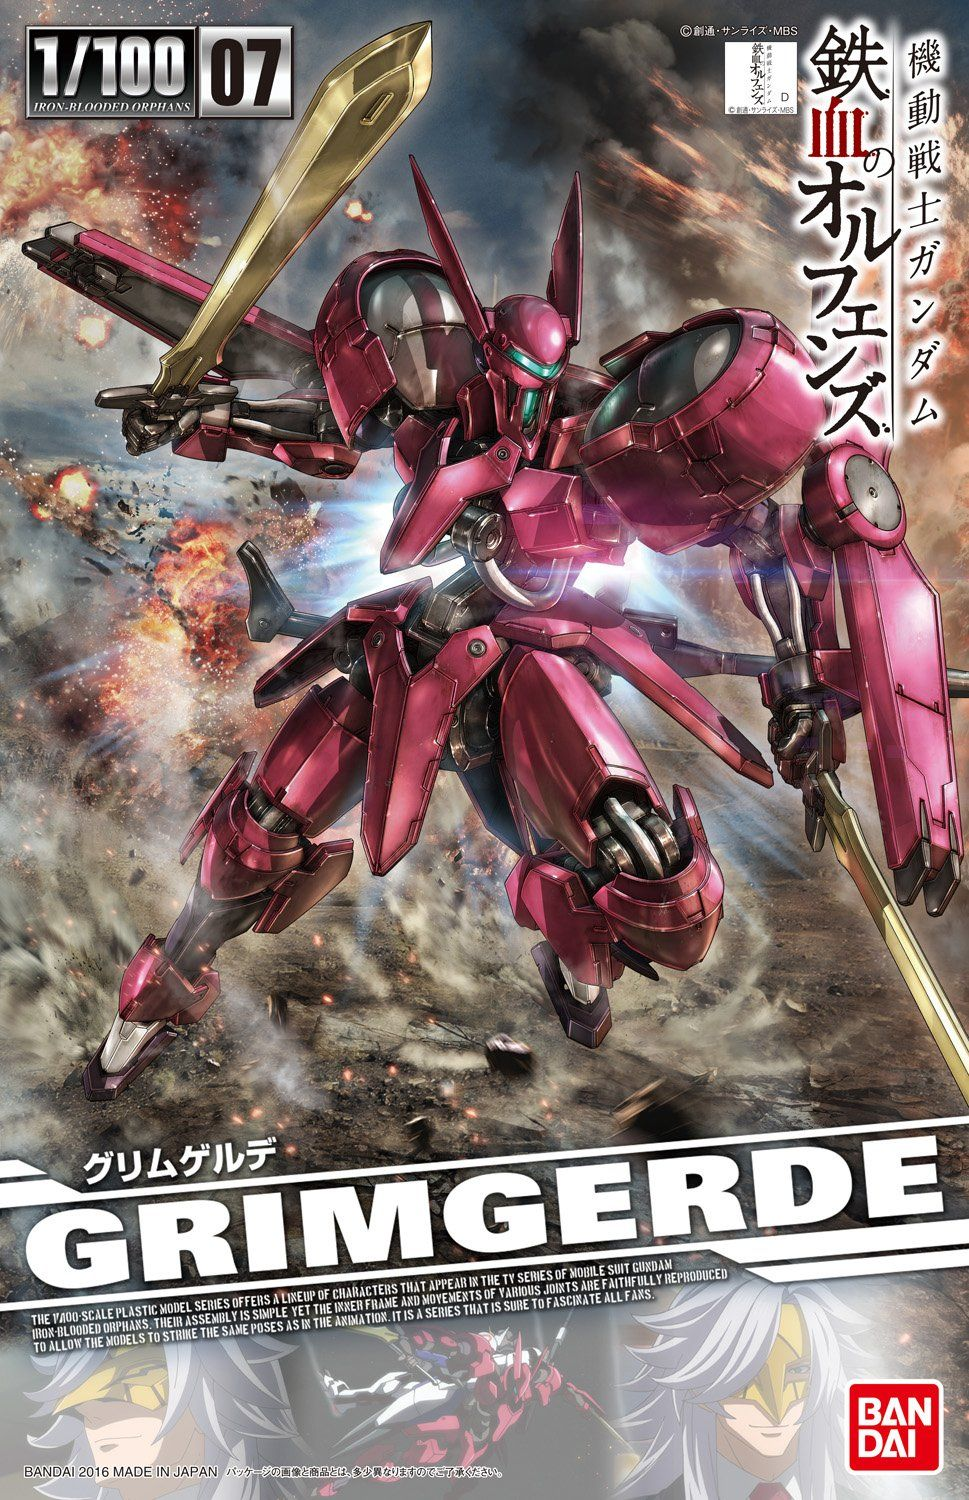 SAMPLE REVIEW] 1/100 GRIMGERDE: Box Art, Many Images, Info Release ...